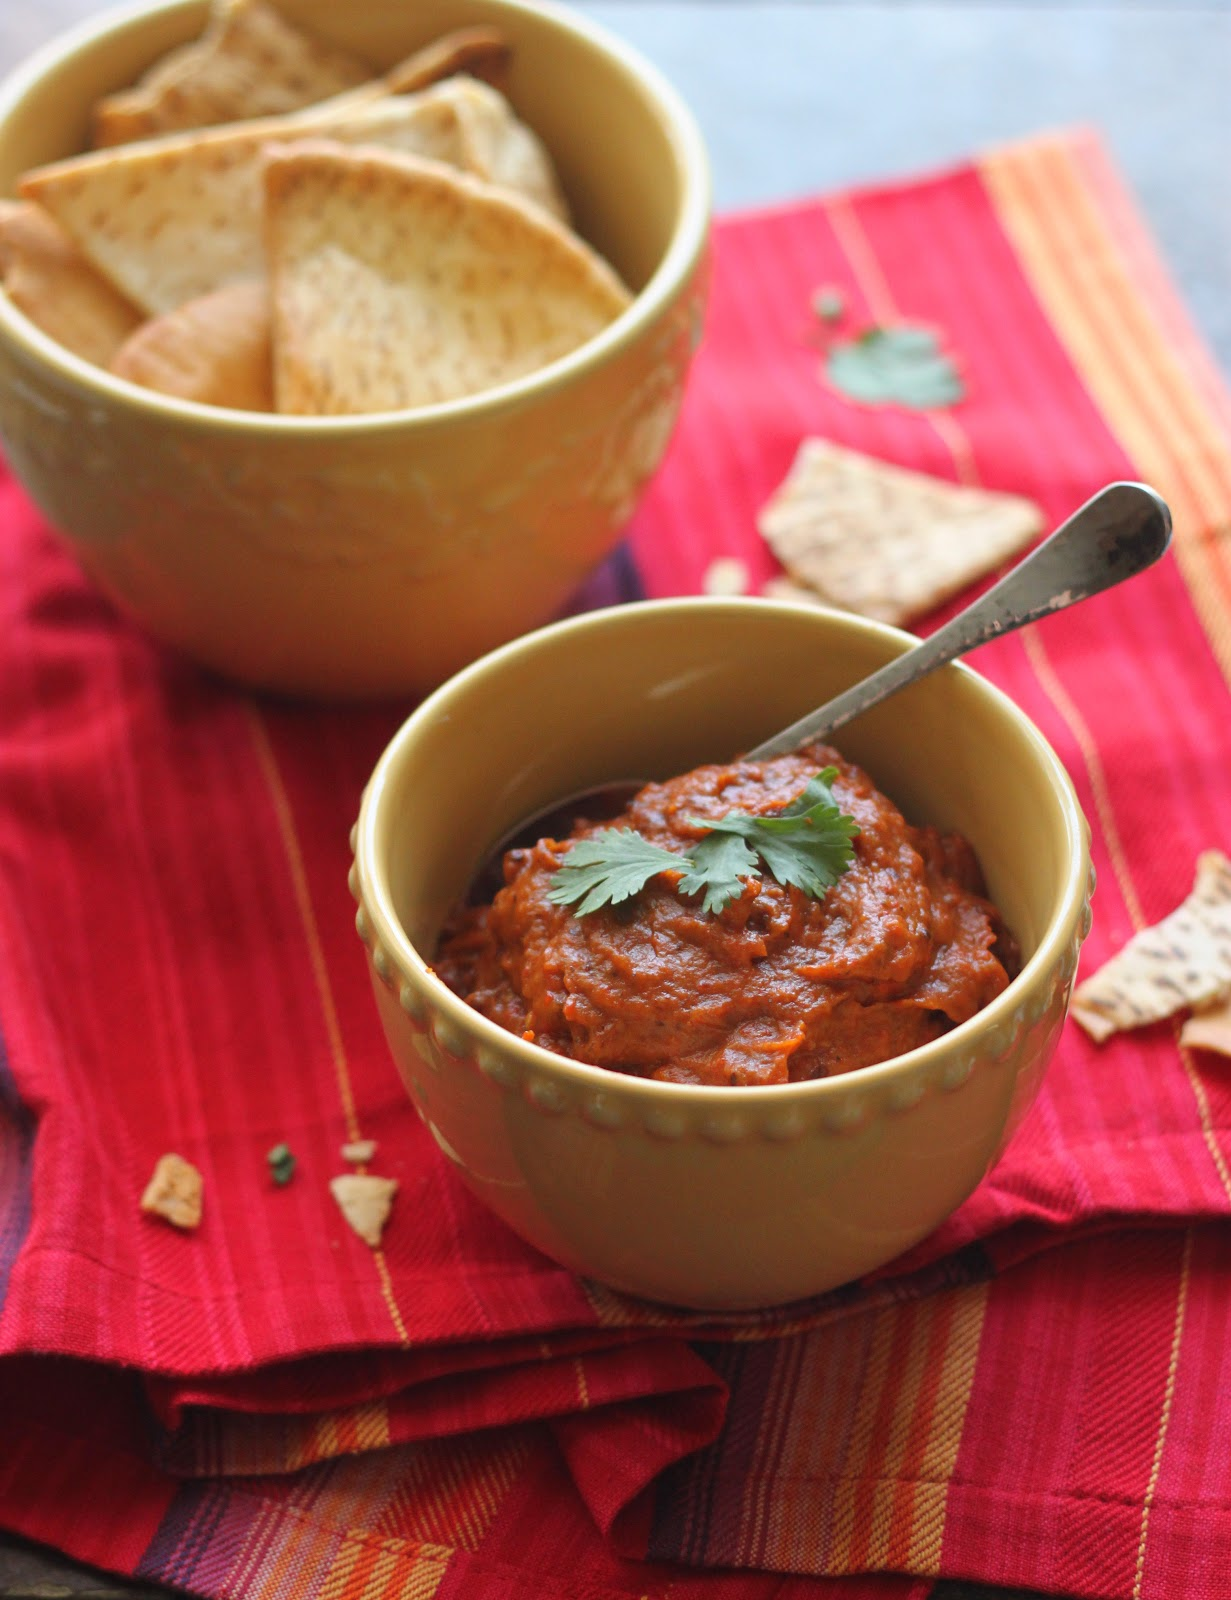 The Cilantropist: Roasted Eggplant and Red Pepper Dip